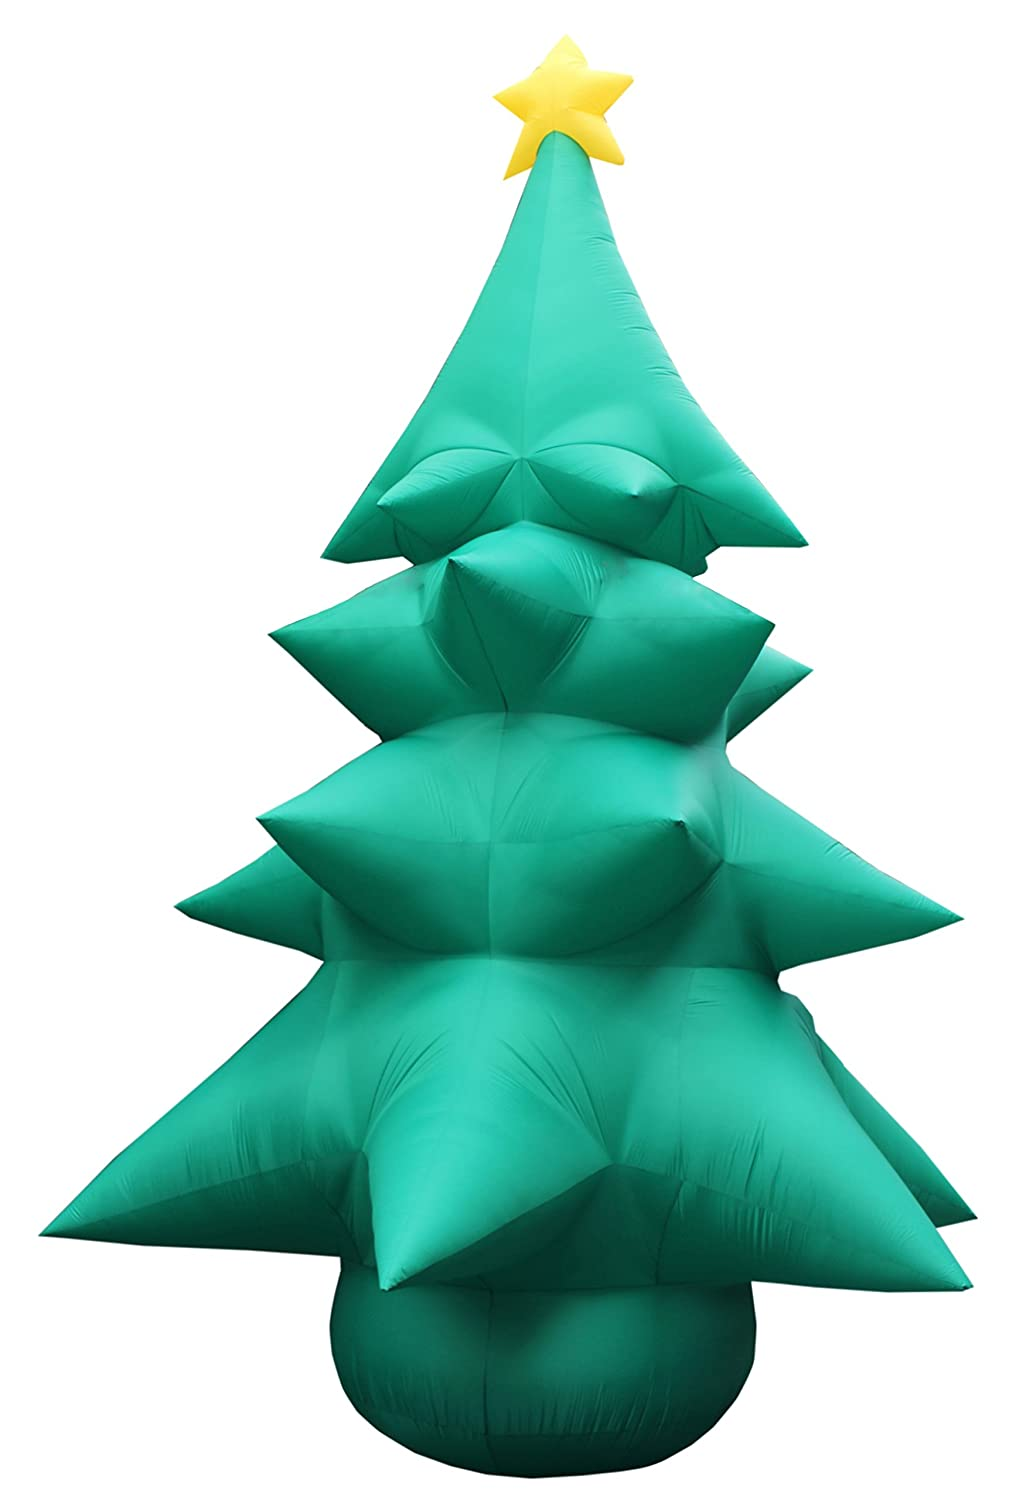 amazoncom 20 foot tall inflatable christmas tree with star garden outdoor - Huge Inflatable Christmas Decorations